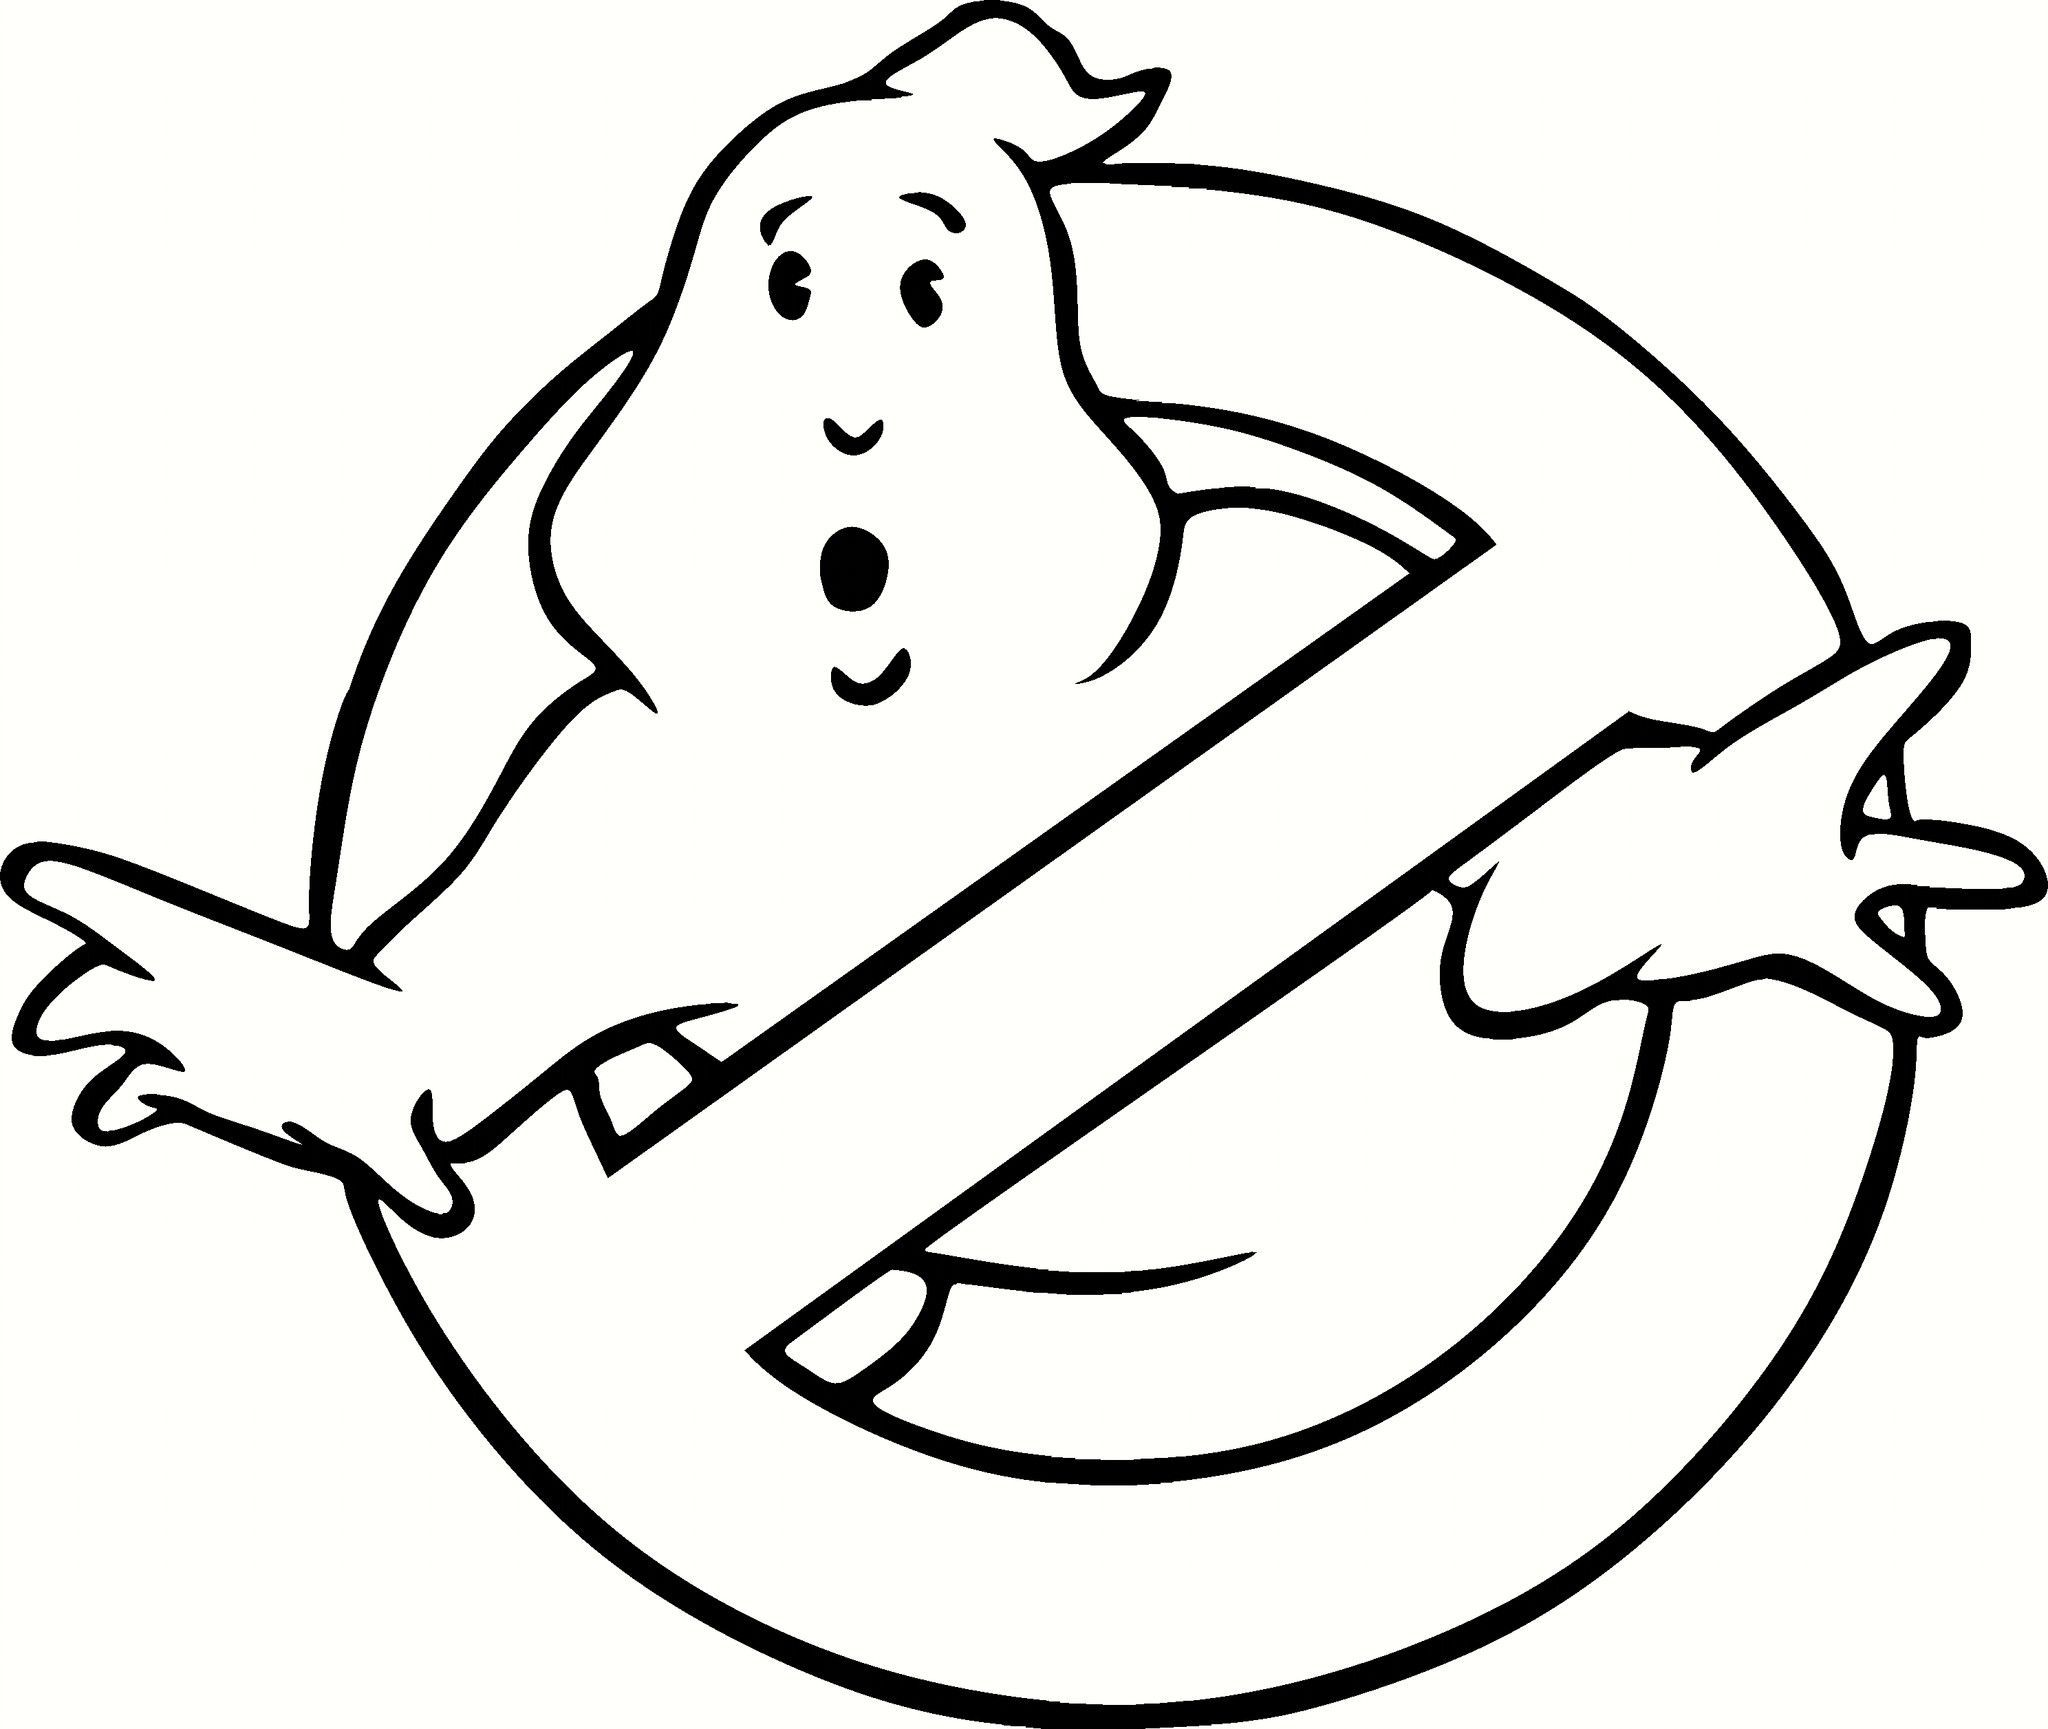 Ghost Busters Logo Vinyl Decal Graphic Choose Your Color And